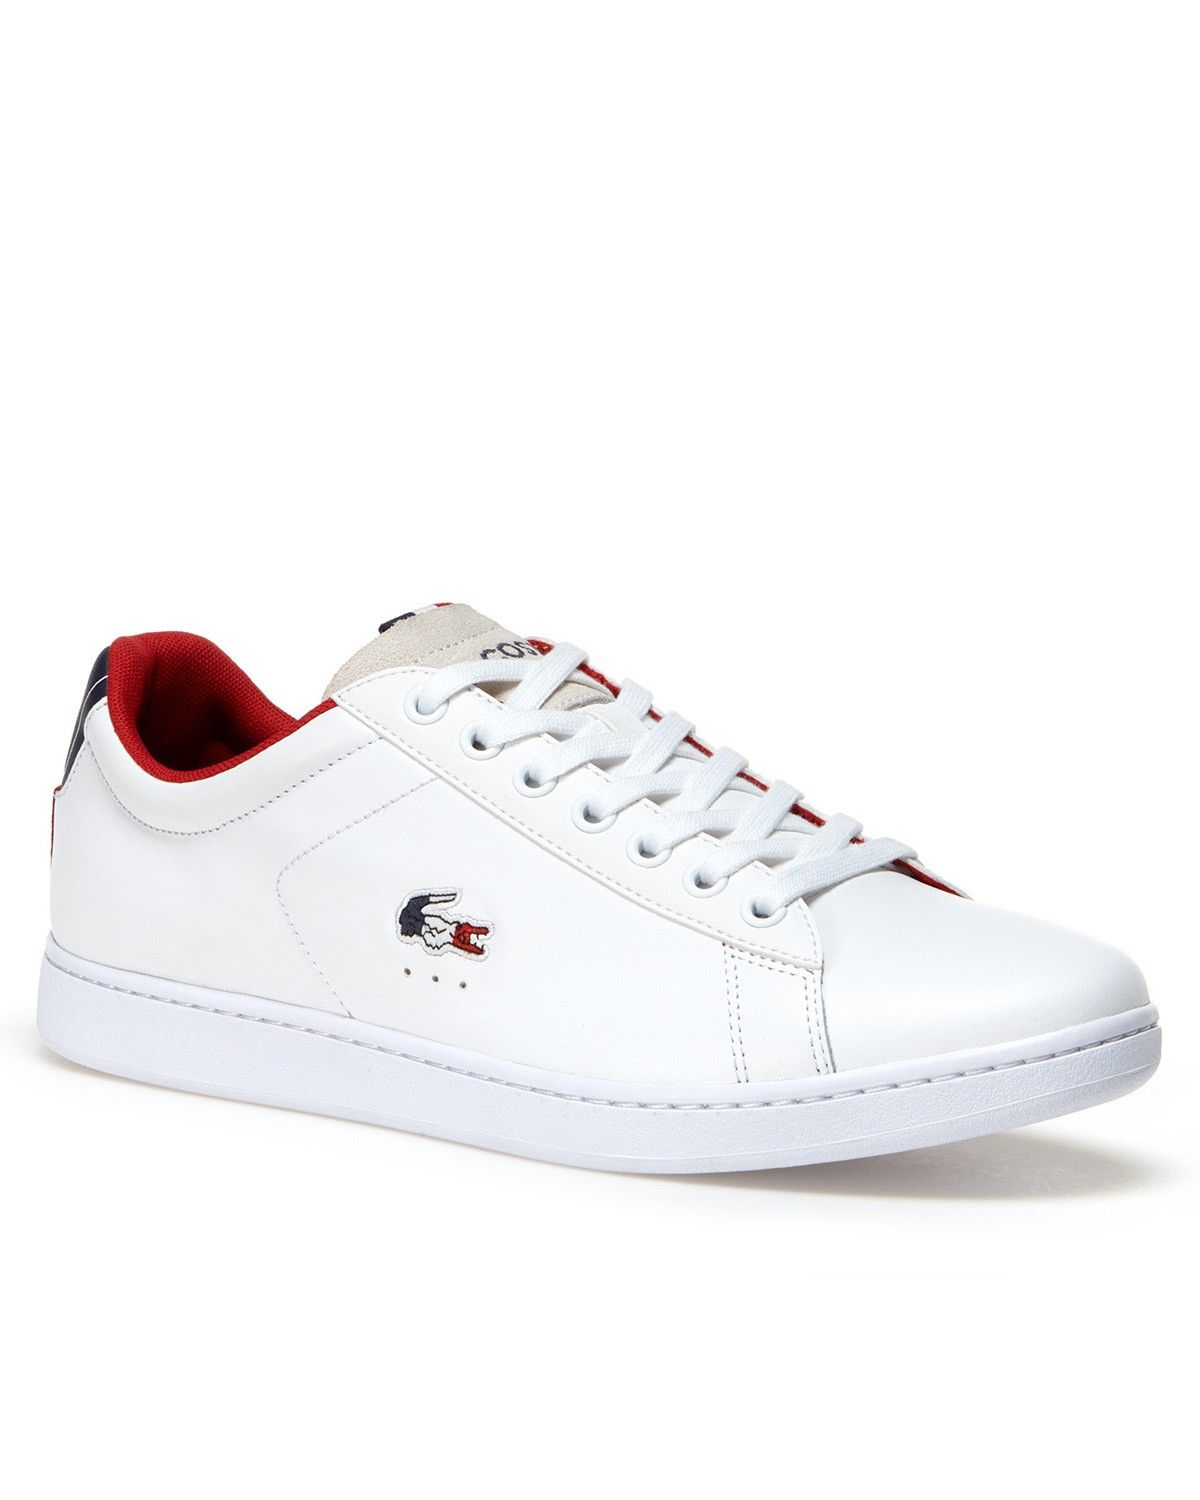 3c558d970b4 White LACOSTE © Shoes ✶ Carnaby Evo | BEST PRICE | shoes